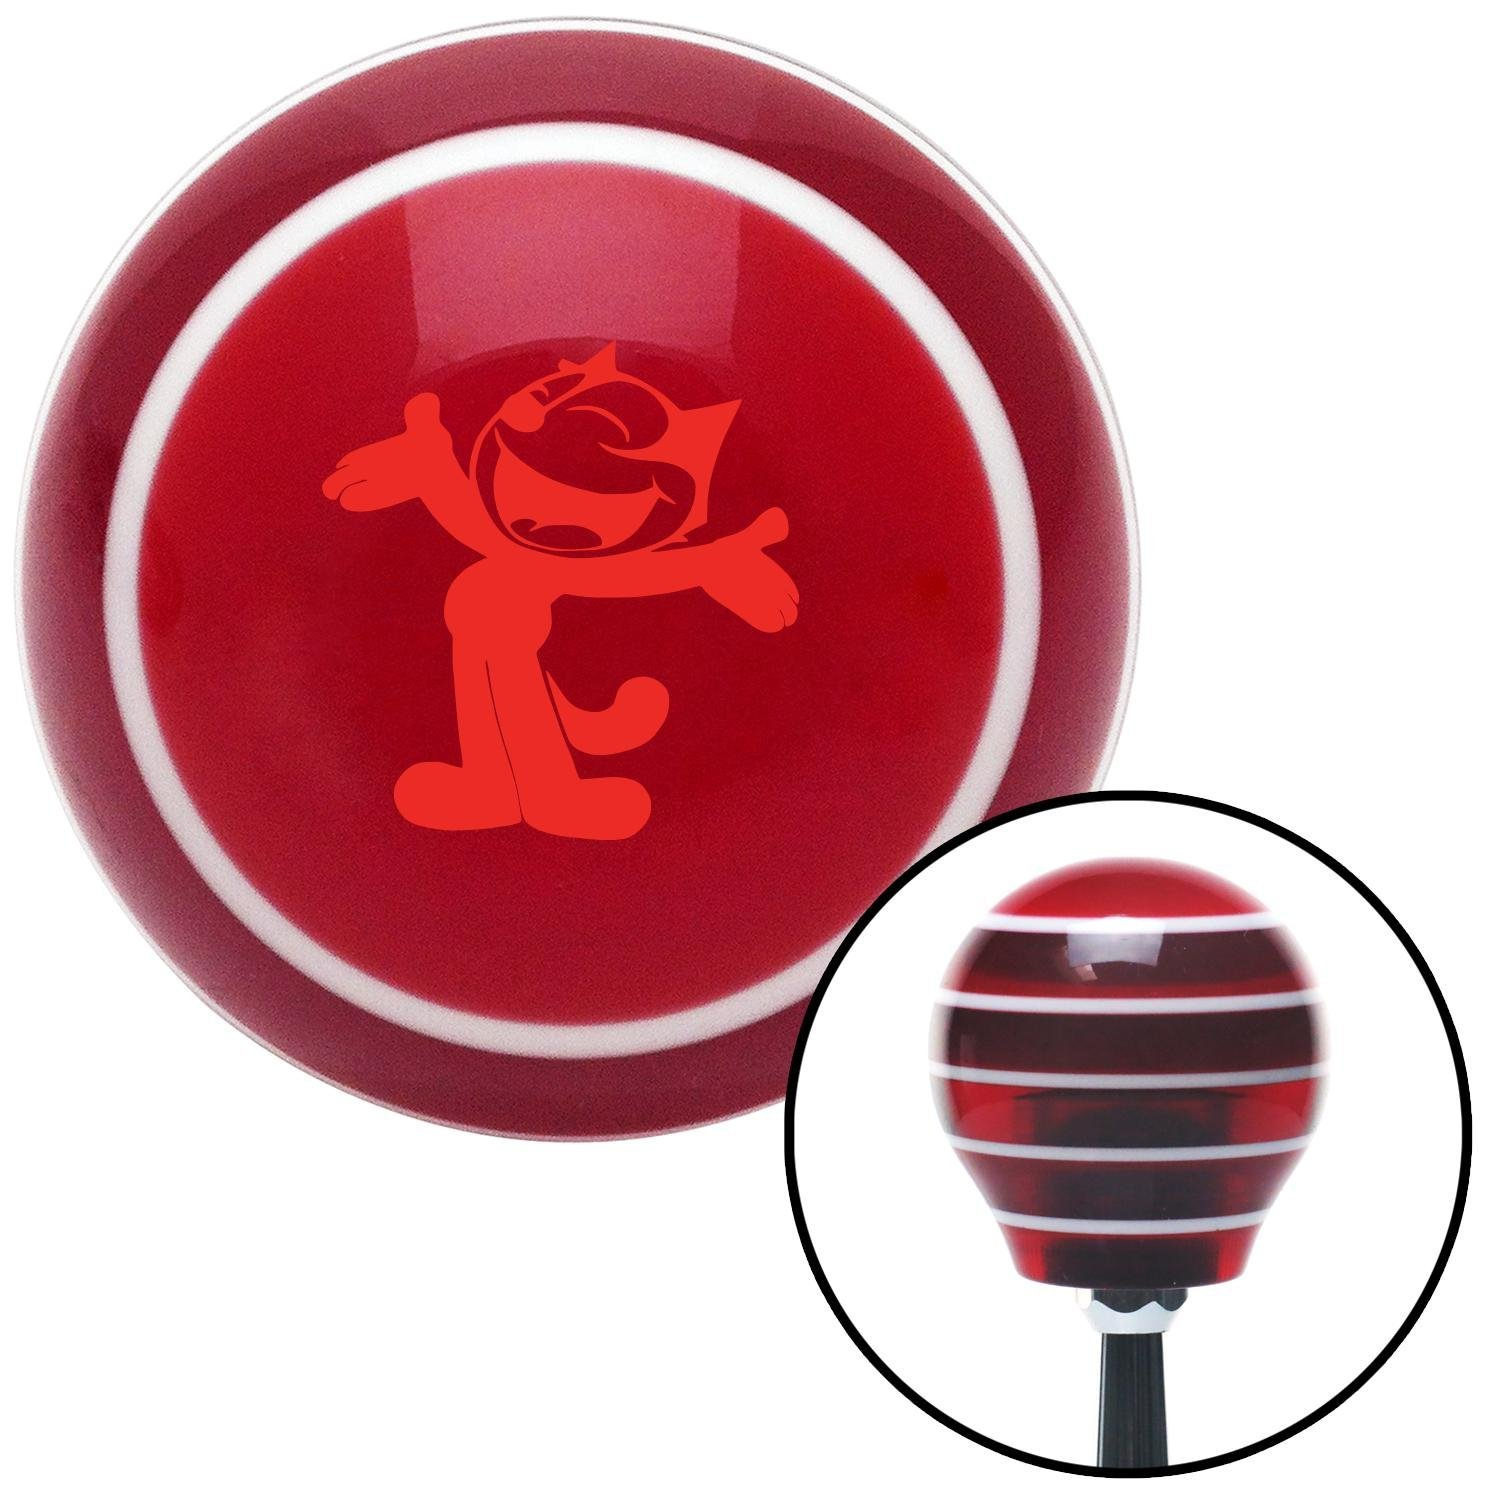 American Shifter 116591 Red Stripe Shift Knob with M16 x 1.5 Insert Red Felix The Cat Classic